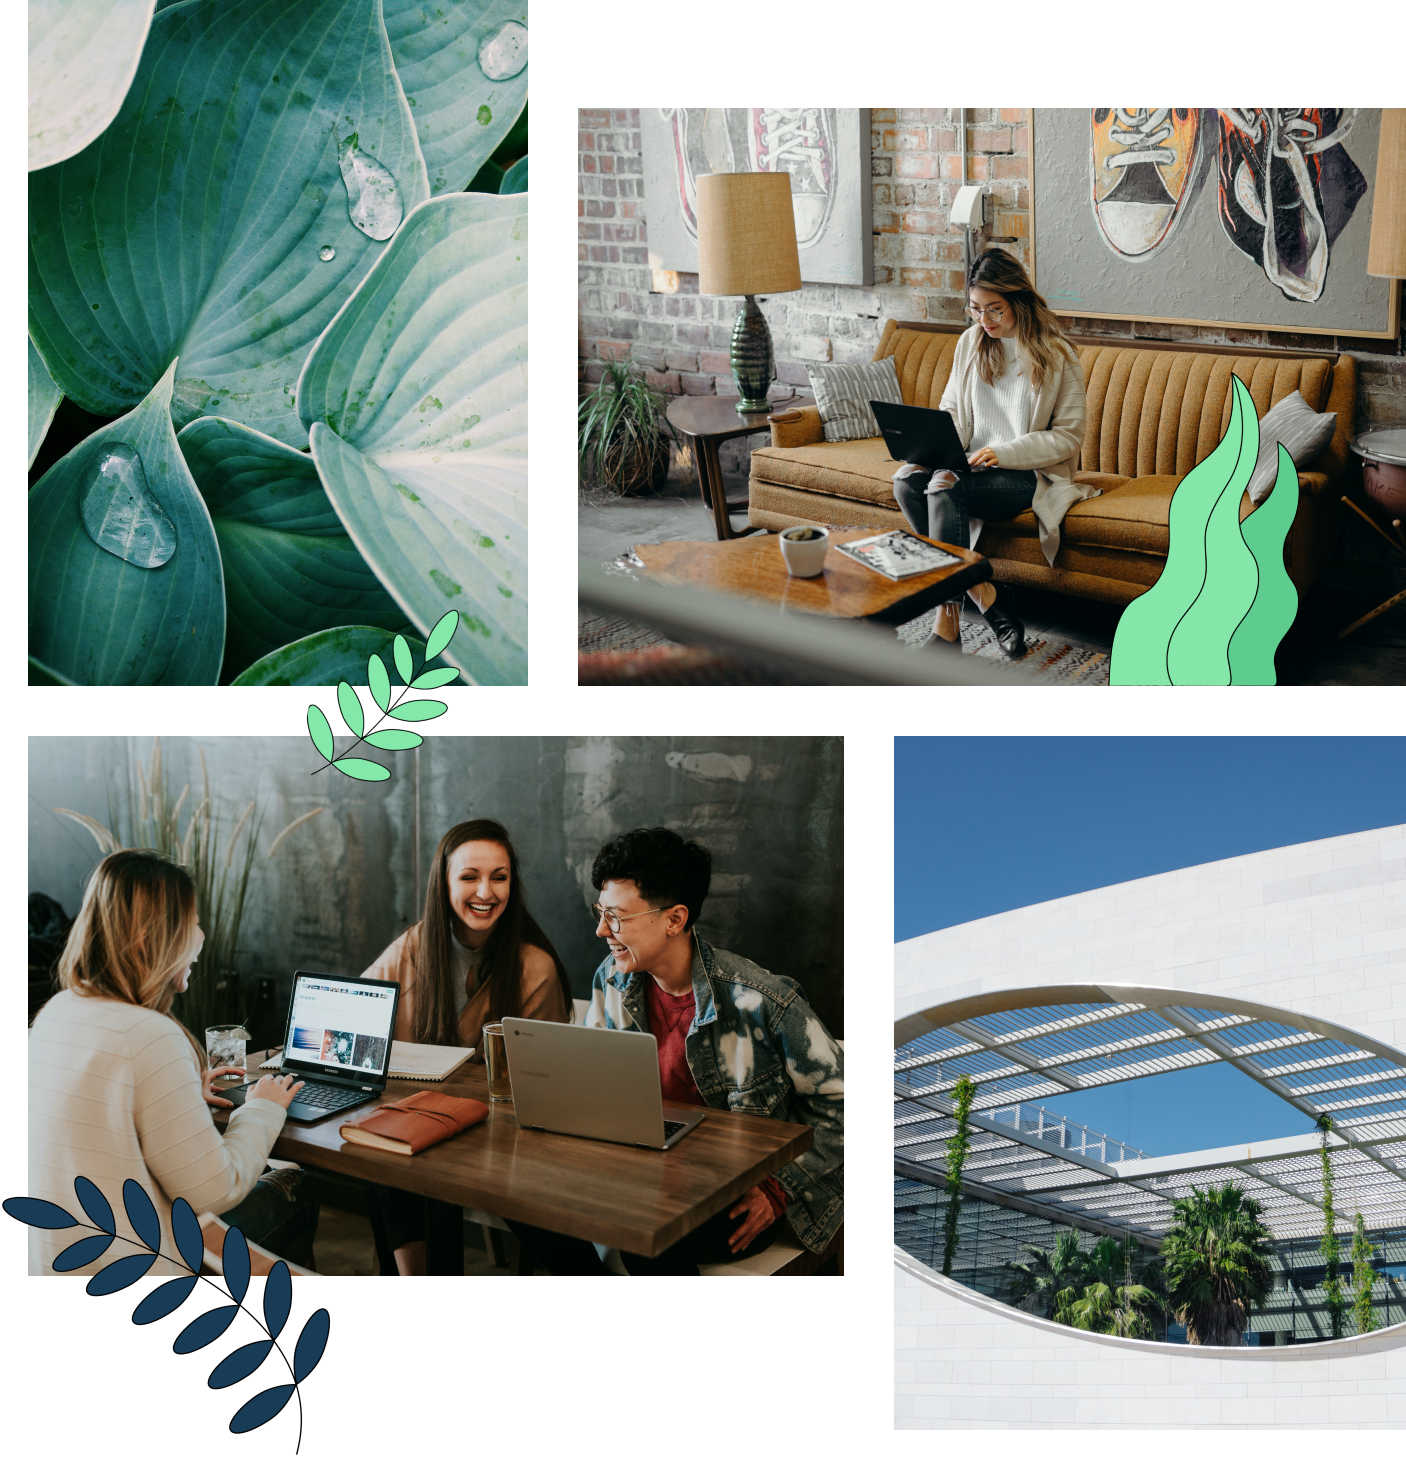 Collage of people working and green outdoor areas.